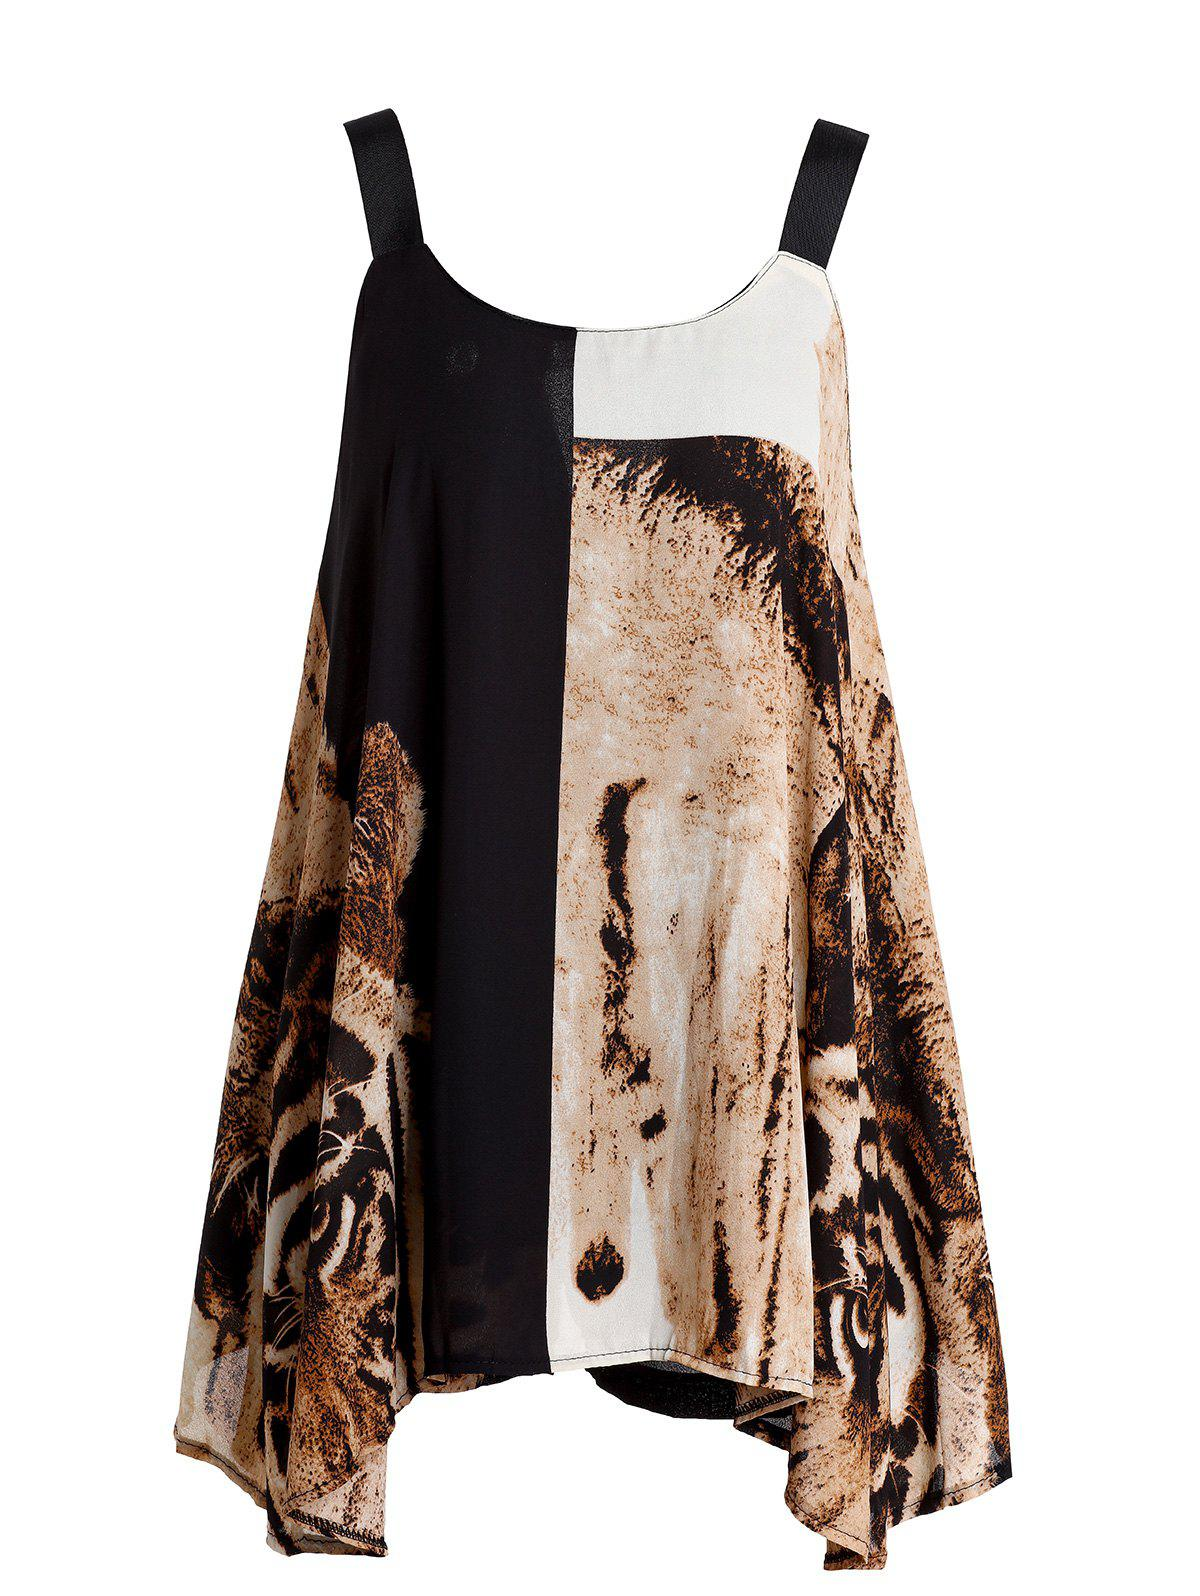 Stylish Women's Color Block Tiger Printed Asymmetric Top + Shorts Twinset - COLORMIX ONE SIZE(FIT SIZE XS TO M)